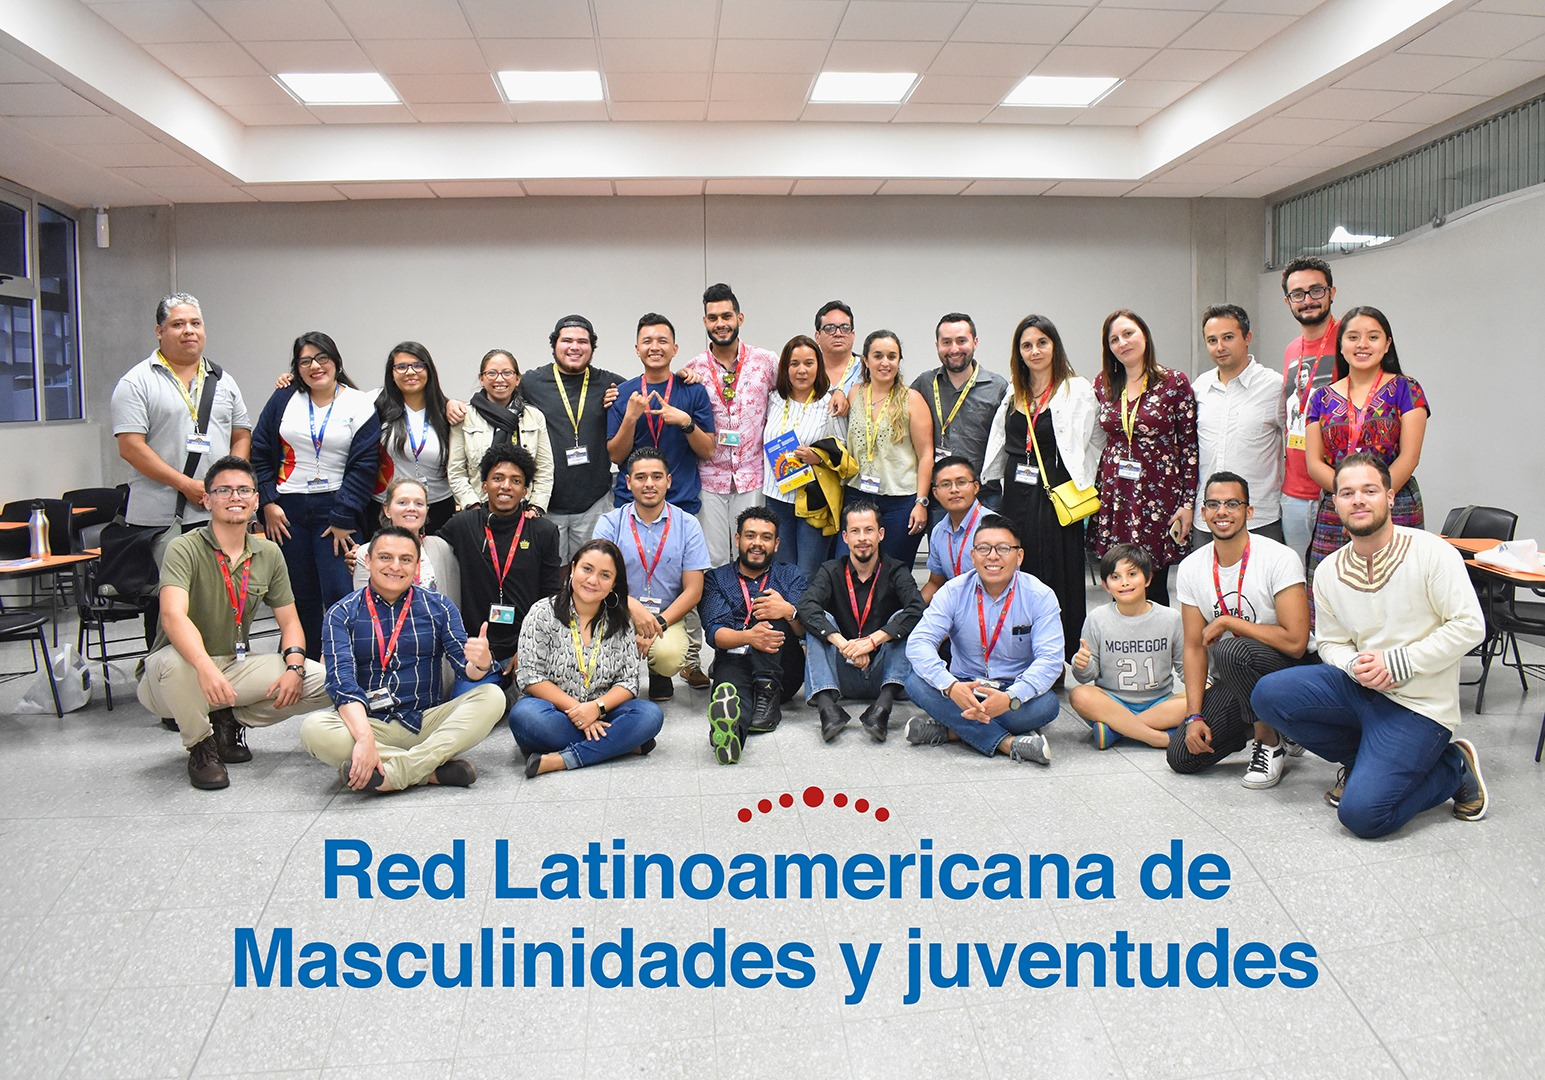 Co-creators of the Latin American Network of Masculinities and Youth.